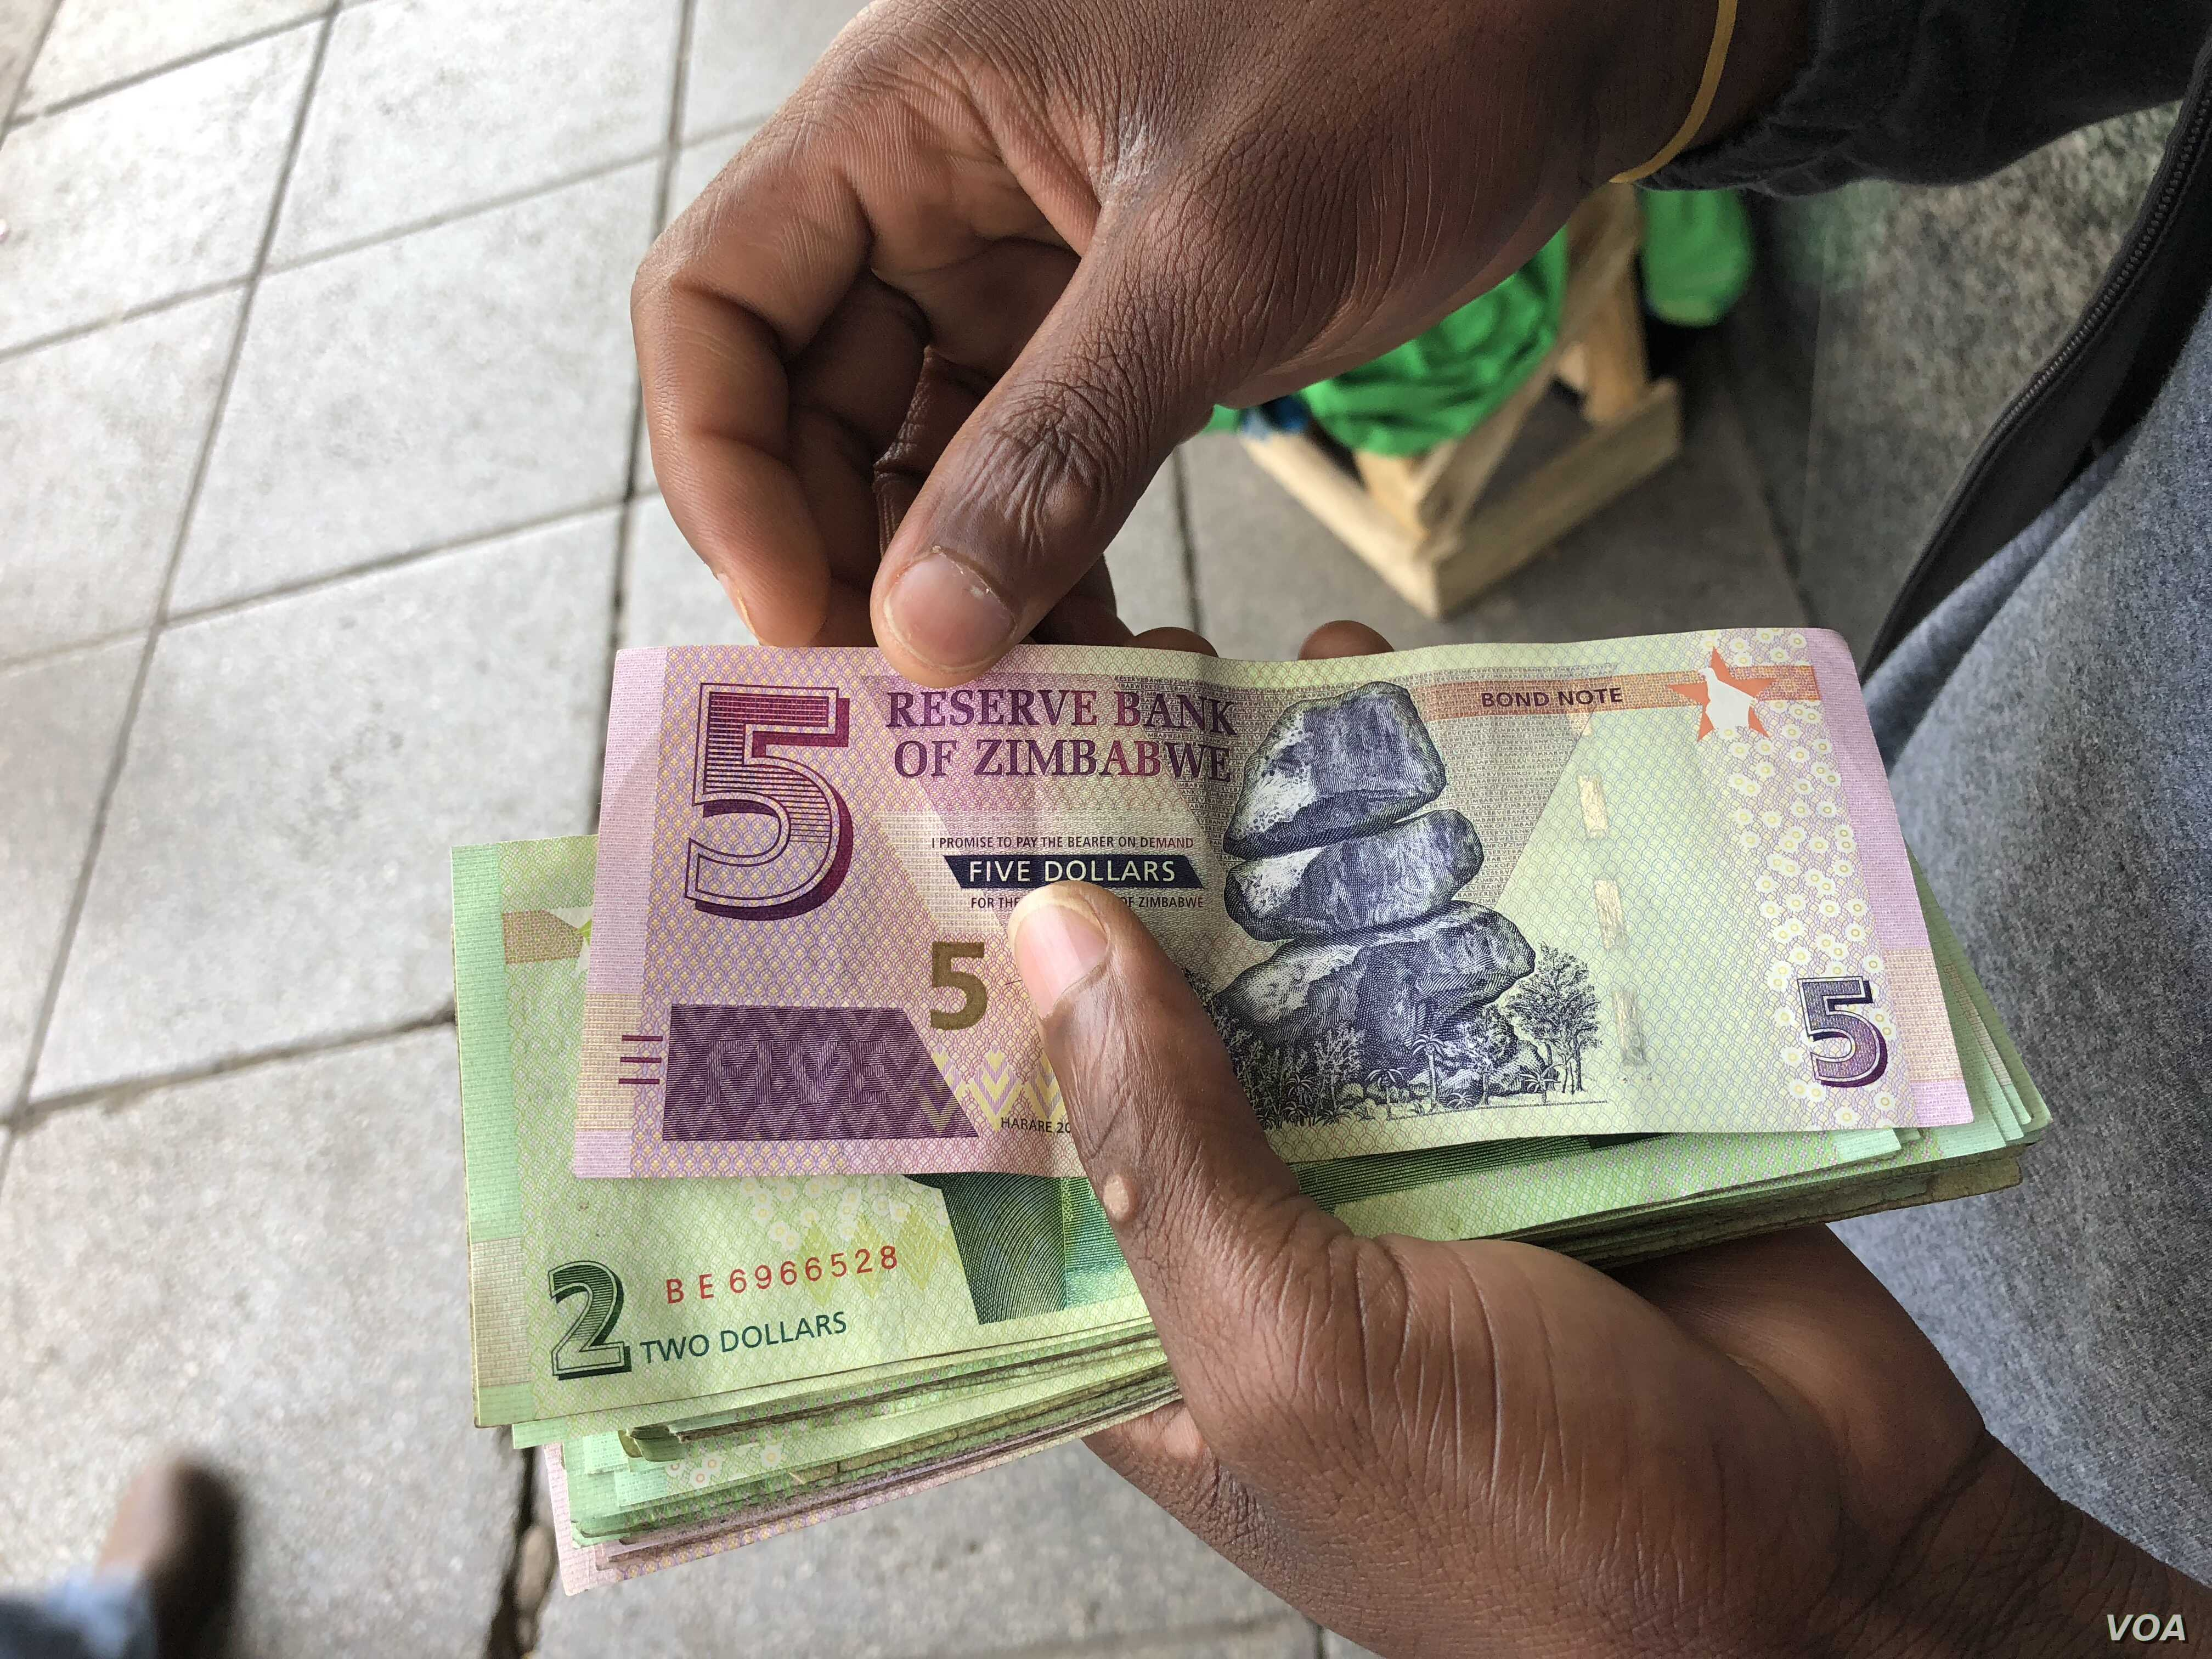 A man in Harare holds bondnotes issued by Reserve Bank of Zimbabwe, Oct. 15, 2018. The introduction of bond notes - a currency Zimbabwe started printing two years ago to ease the situation -- has not helped. (C.Mavhunga/VOA)